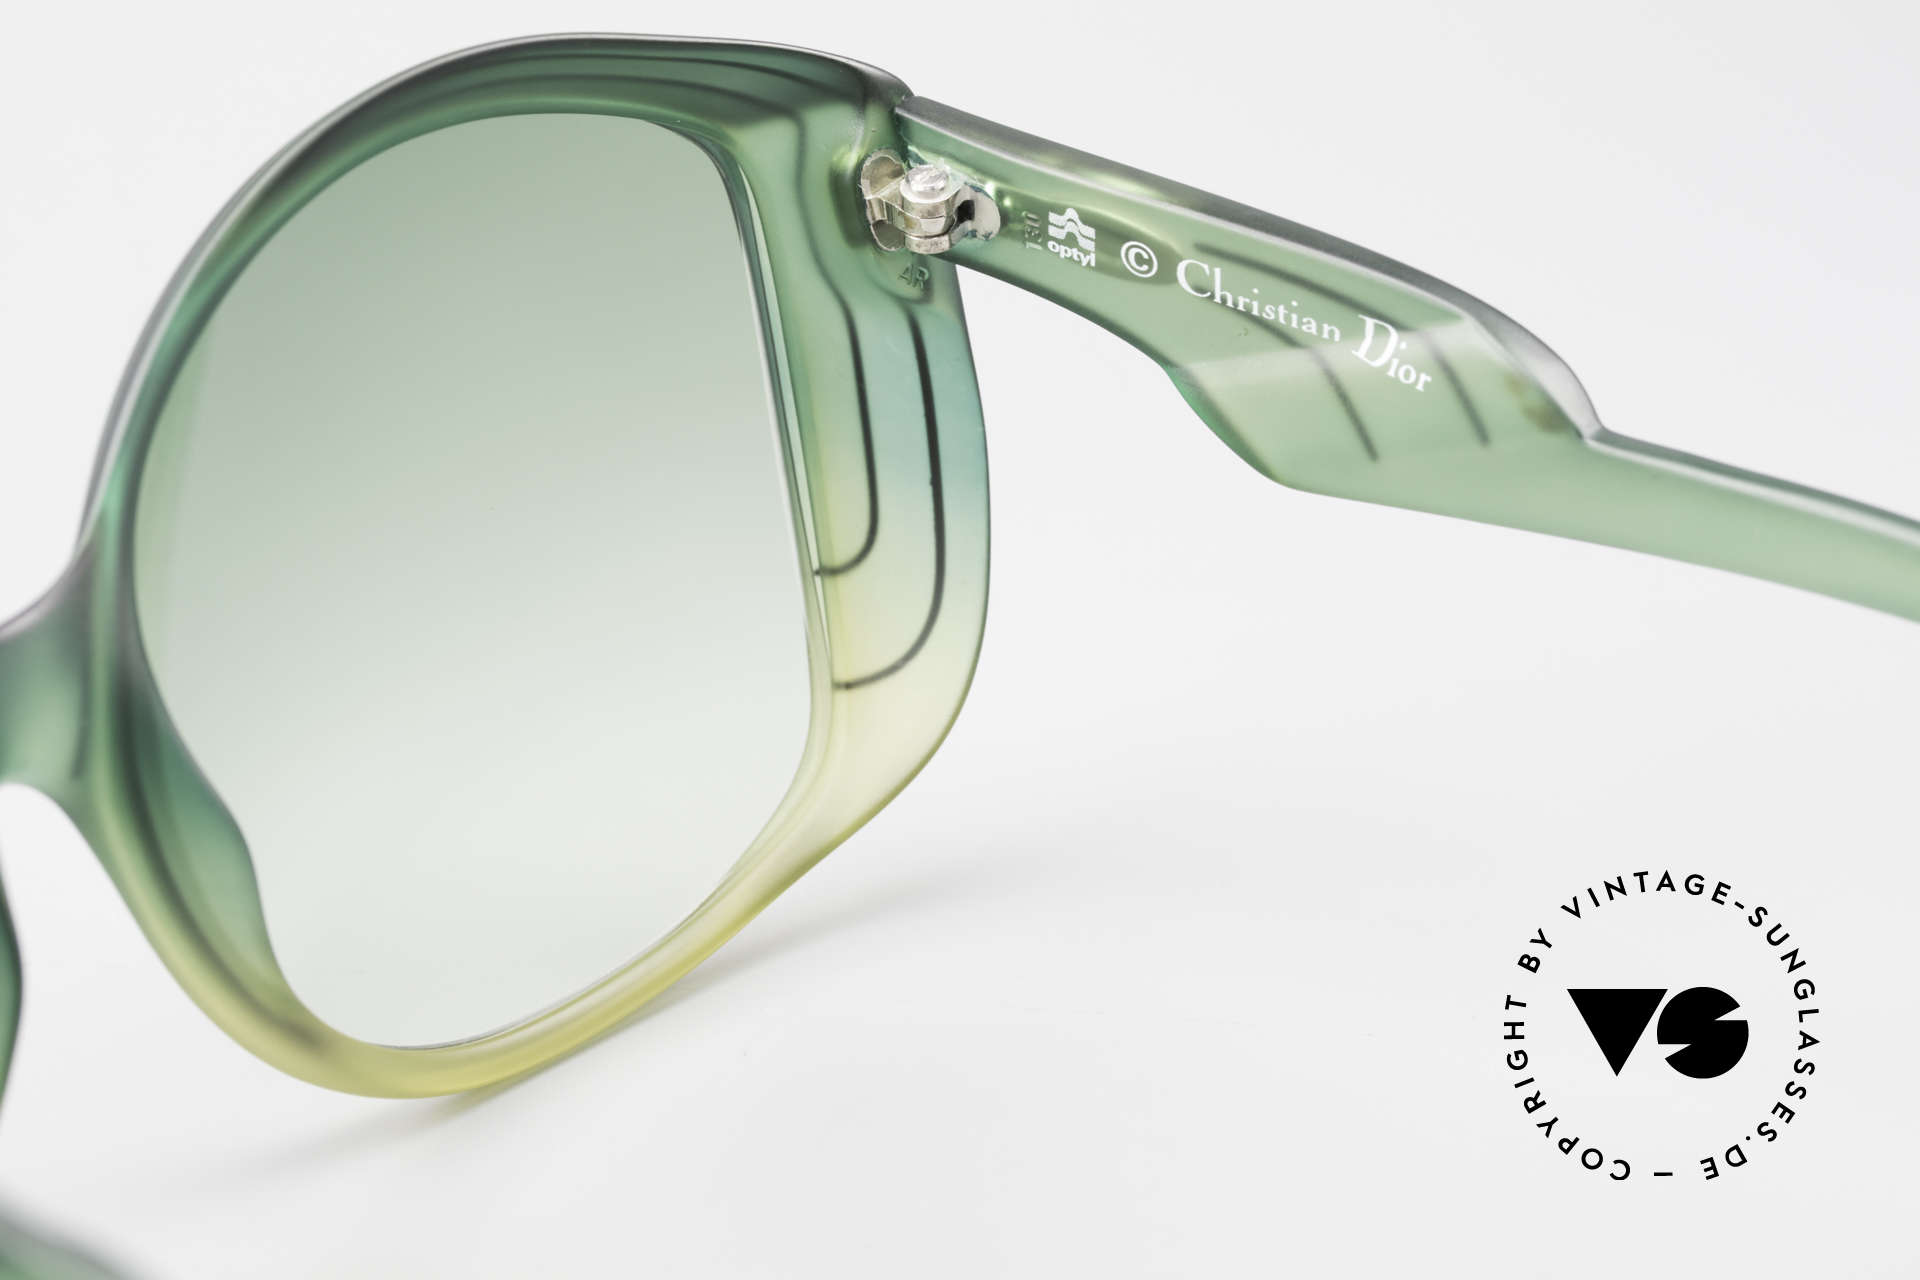 Christian Dior 2041 XXL 1970's Ladies Sunglasses, NO RETRO shades, but an unworn 40 years old original, Made for Women